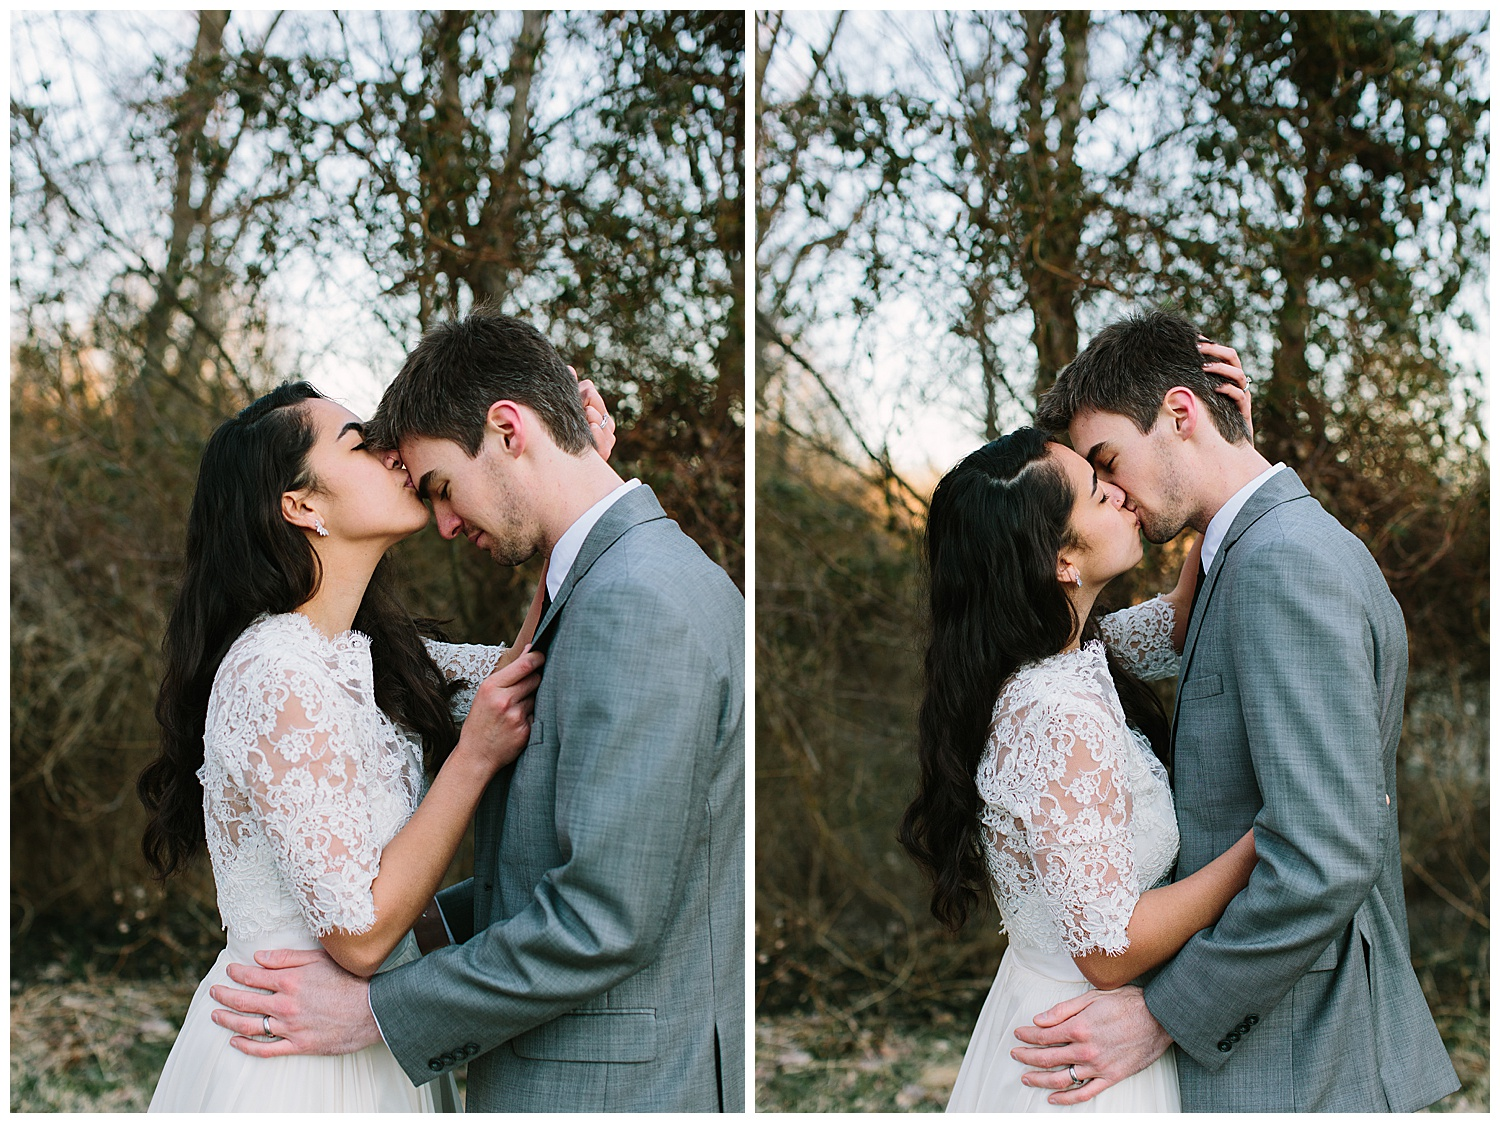 trent.and.kendra.photography.foxhollow.farm.elopement-54.jpg